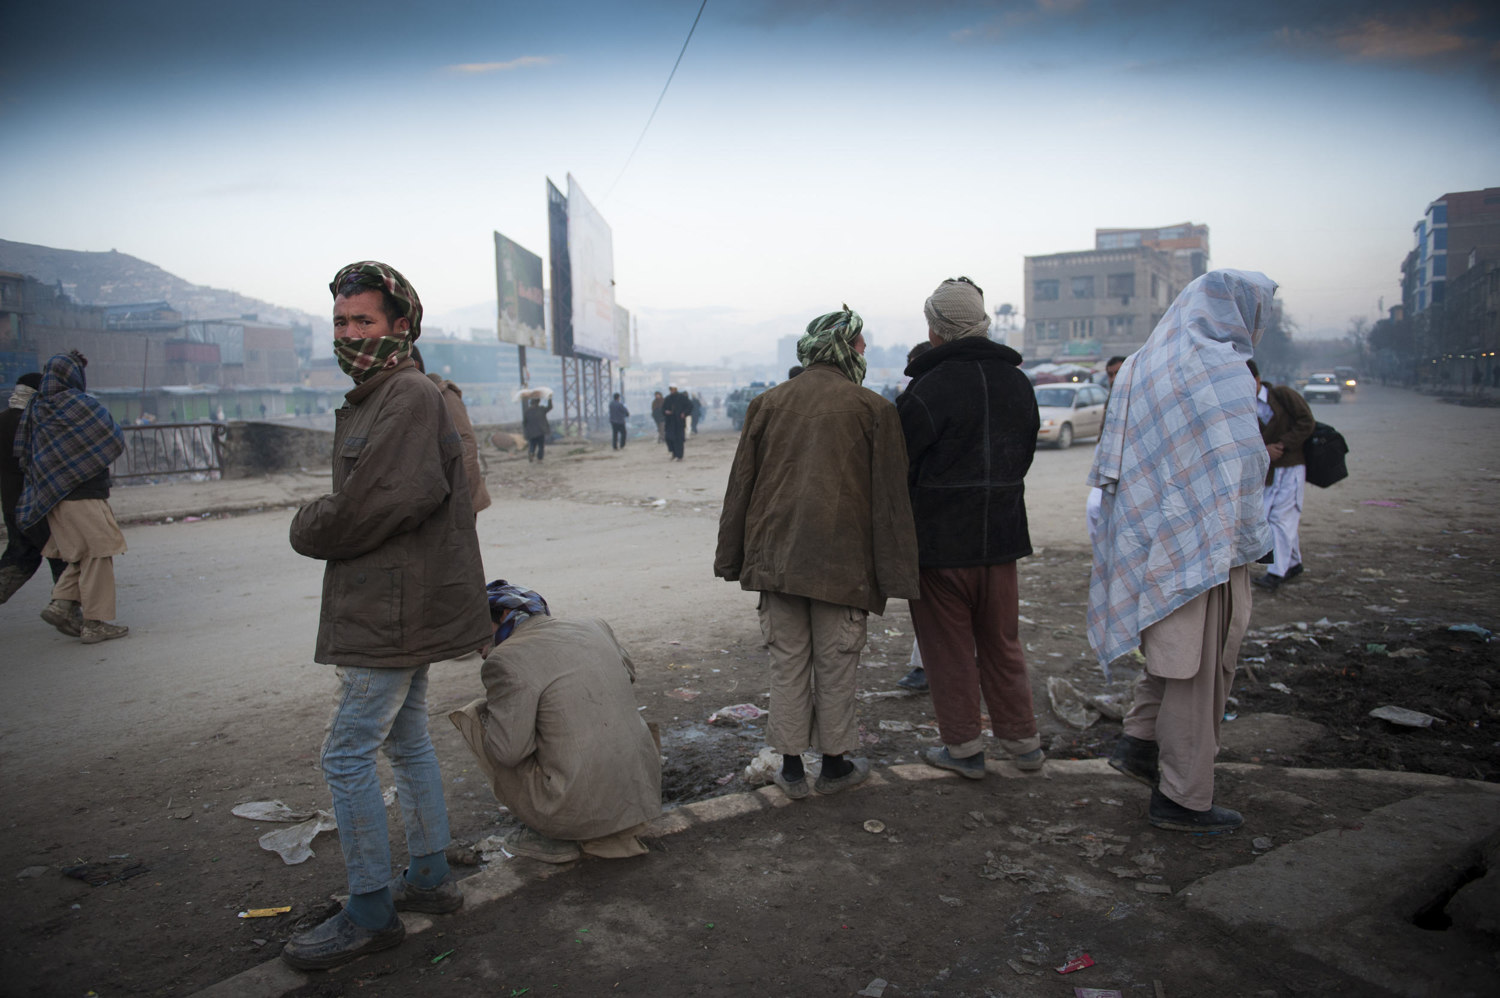 Day laborers wait outside the Pashto Market in downtown Kabul hoping to be chosen to work for the day. Workers make 250 Afghans (3-5 dollars) a day and often come from provinces in Afghanistan to seek out  the unregulated labor market and often live in squalid conditions in order to send more money home.